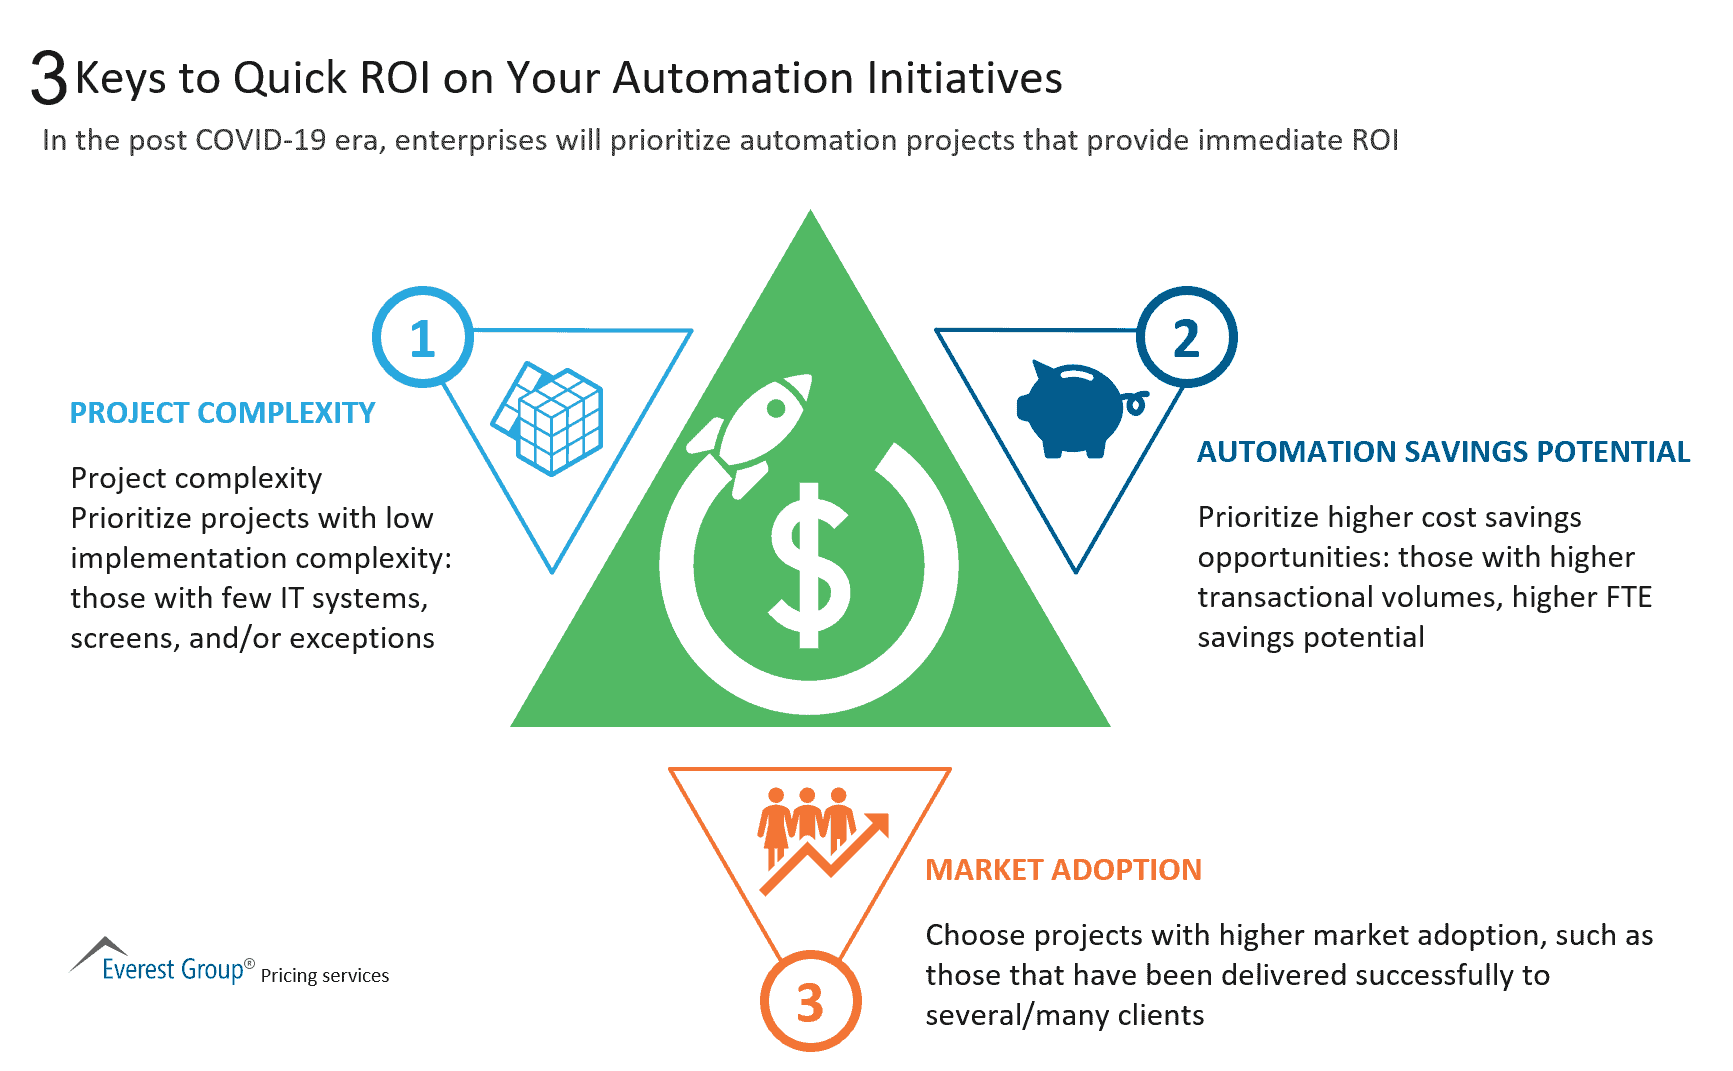 3 Keys to Quick ROI on Your Automation Initiatives